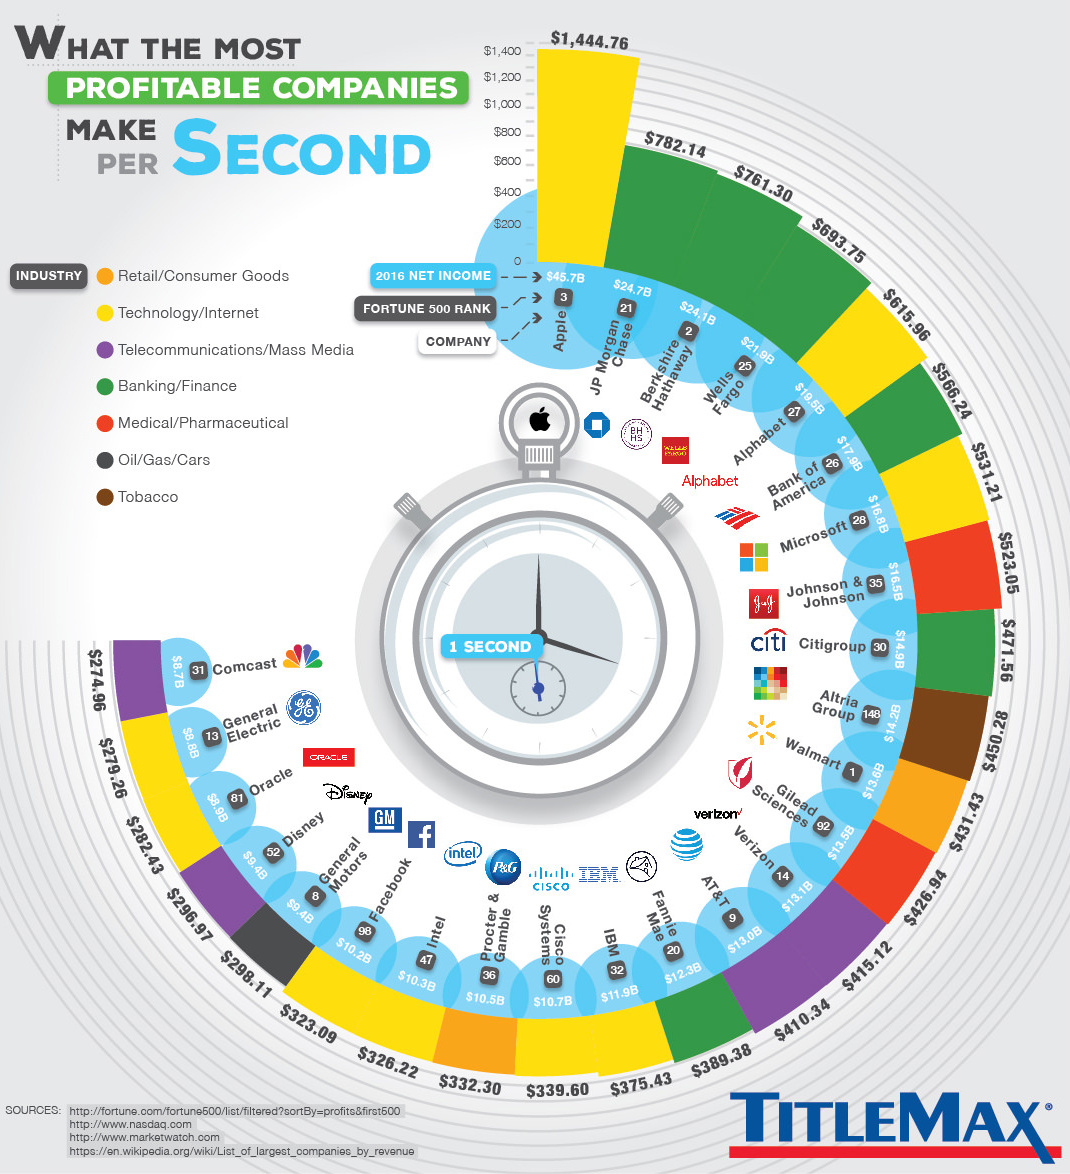 Money Made Per Second by Top Companies